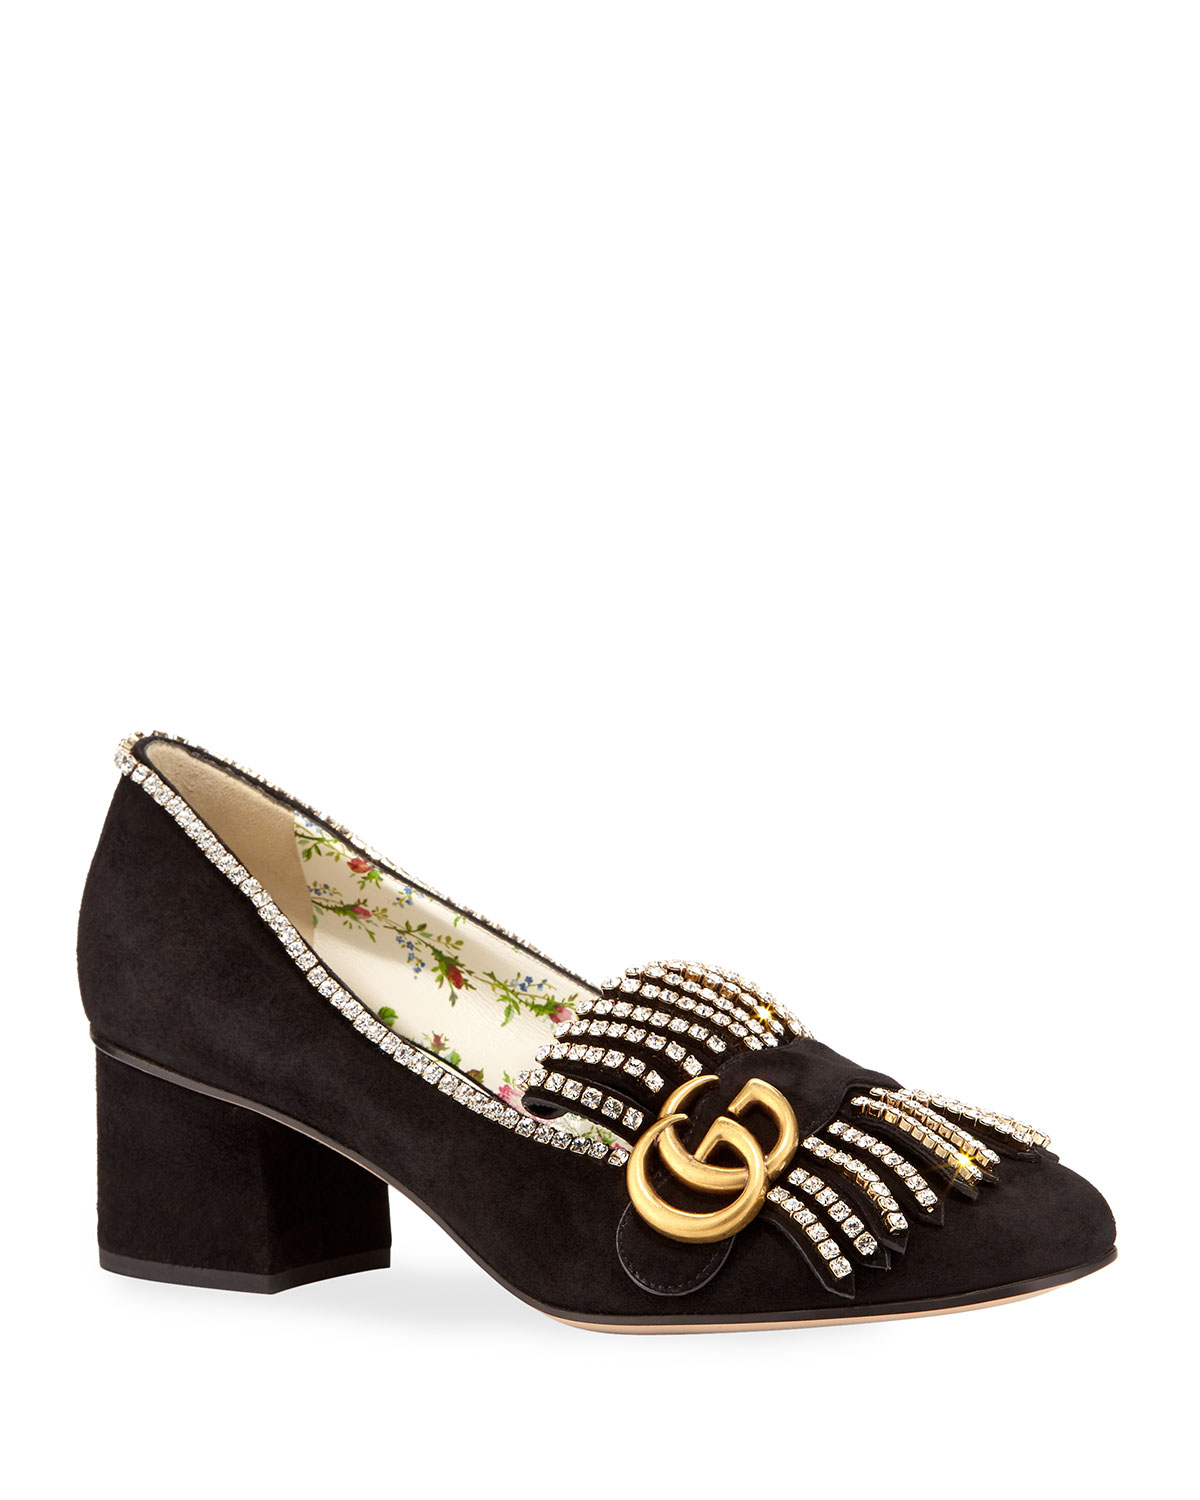 ba0a67a029f Gucci 5mm Marmont Suede Pump with Crystals